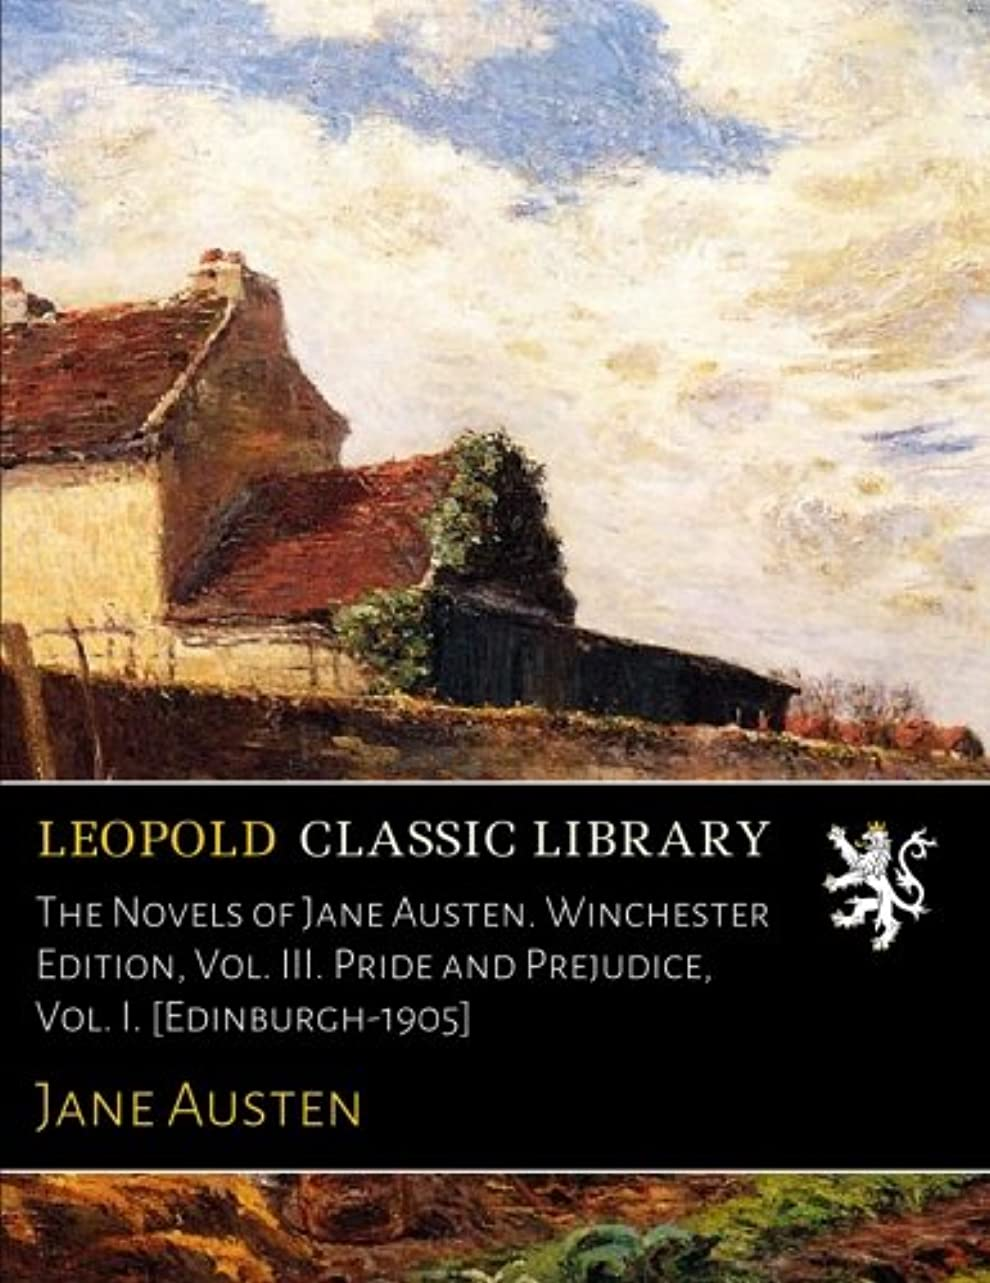 ラオス人鷲レオナルドダThe Novels of Jane Austen. Winchester Edition, Vol. III. Pride and Prejudice, Vol. I. [Edinburgh-1905]